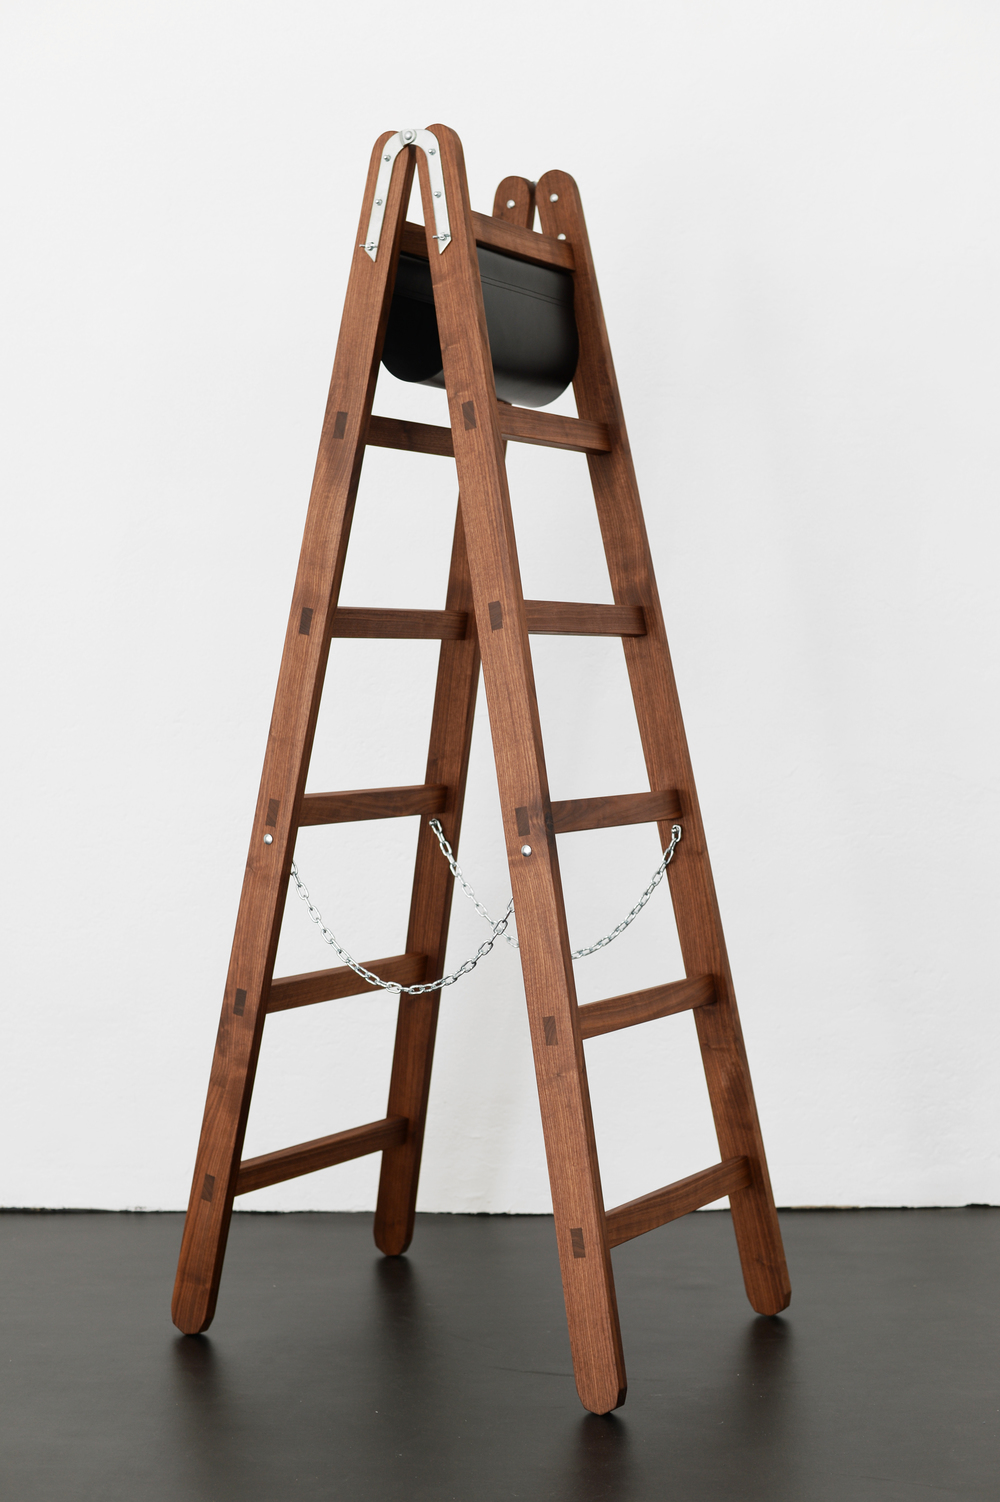 Simon Freund – Wooden Ladder